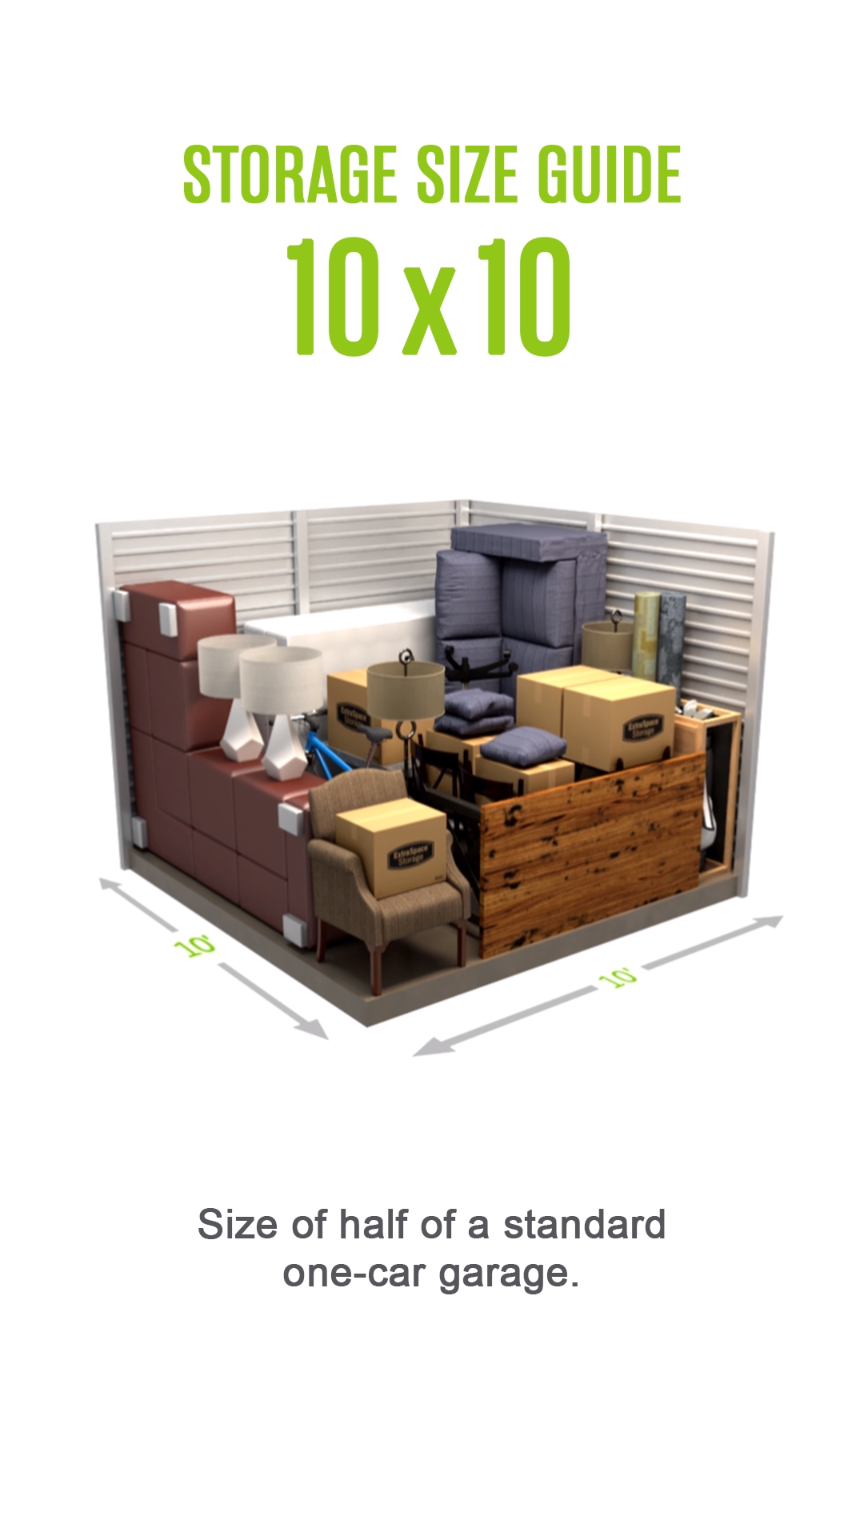 Self Storage Size Guide For A 10x10 Storage Unit Size Of Half Of A Standard One Car Garage S Video Storage Unit Design Self Storage Units Small Storage Containers